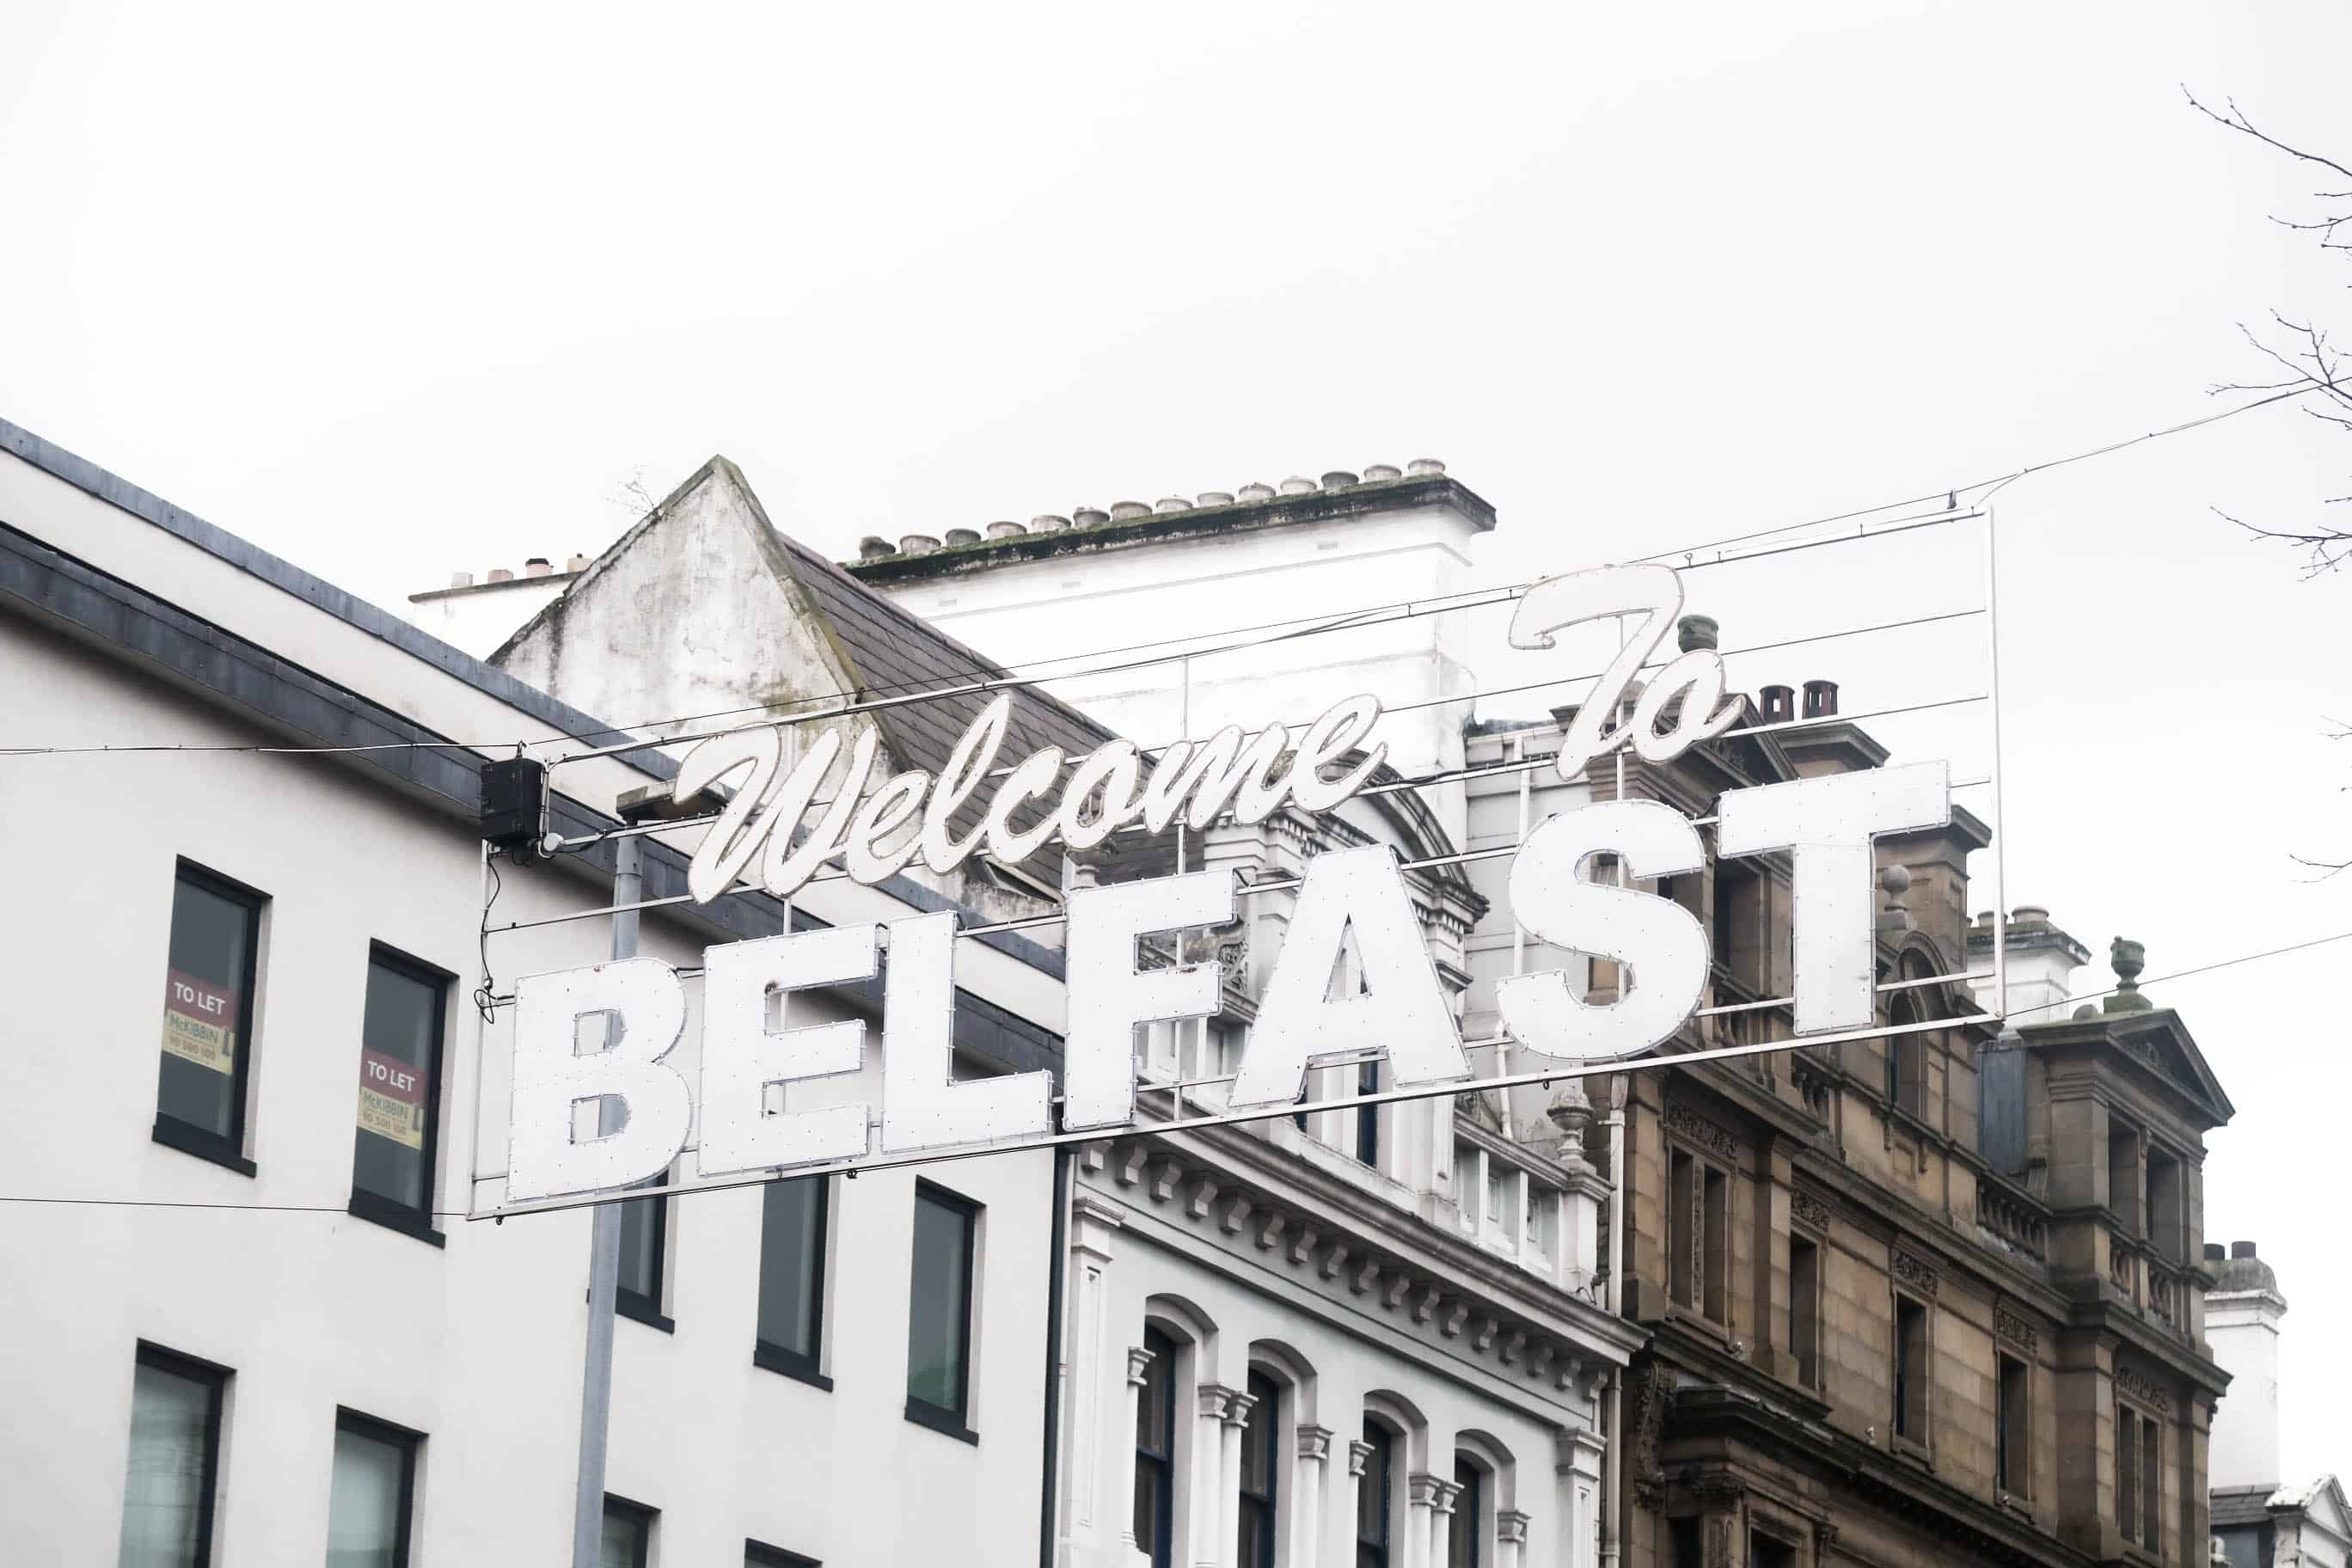 Things to do when you visit Belfast